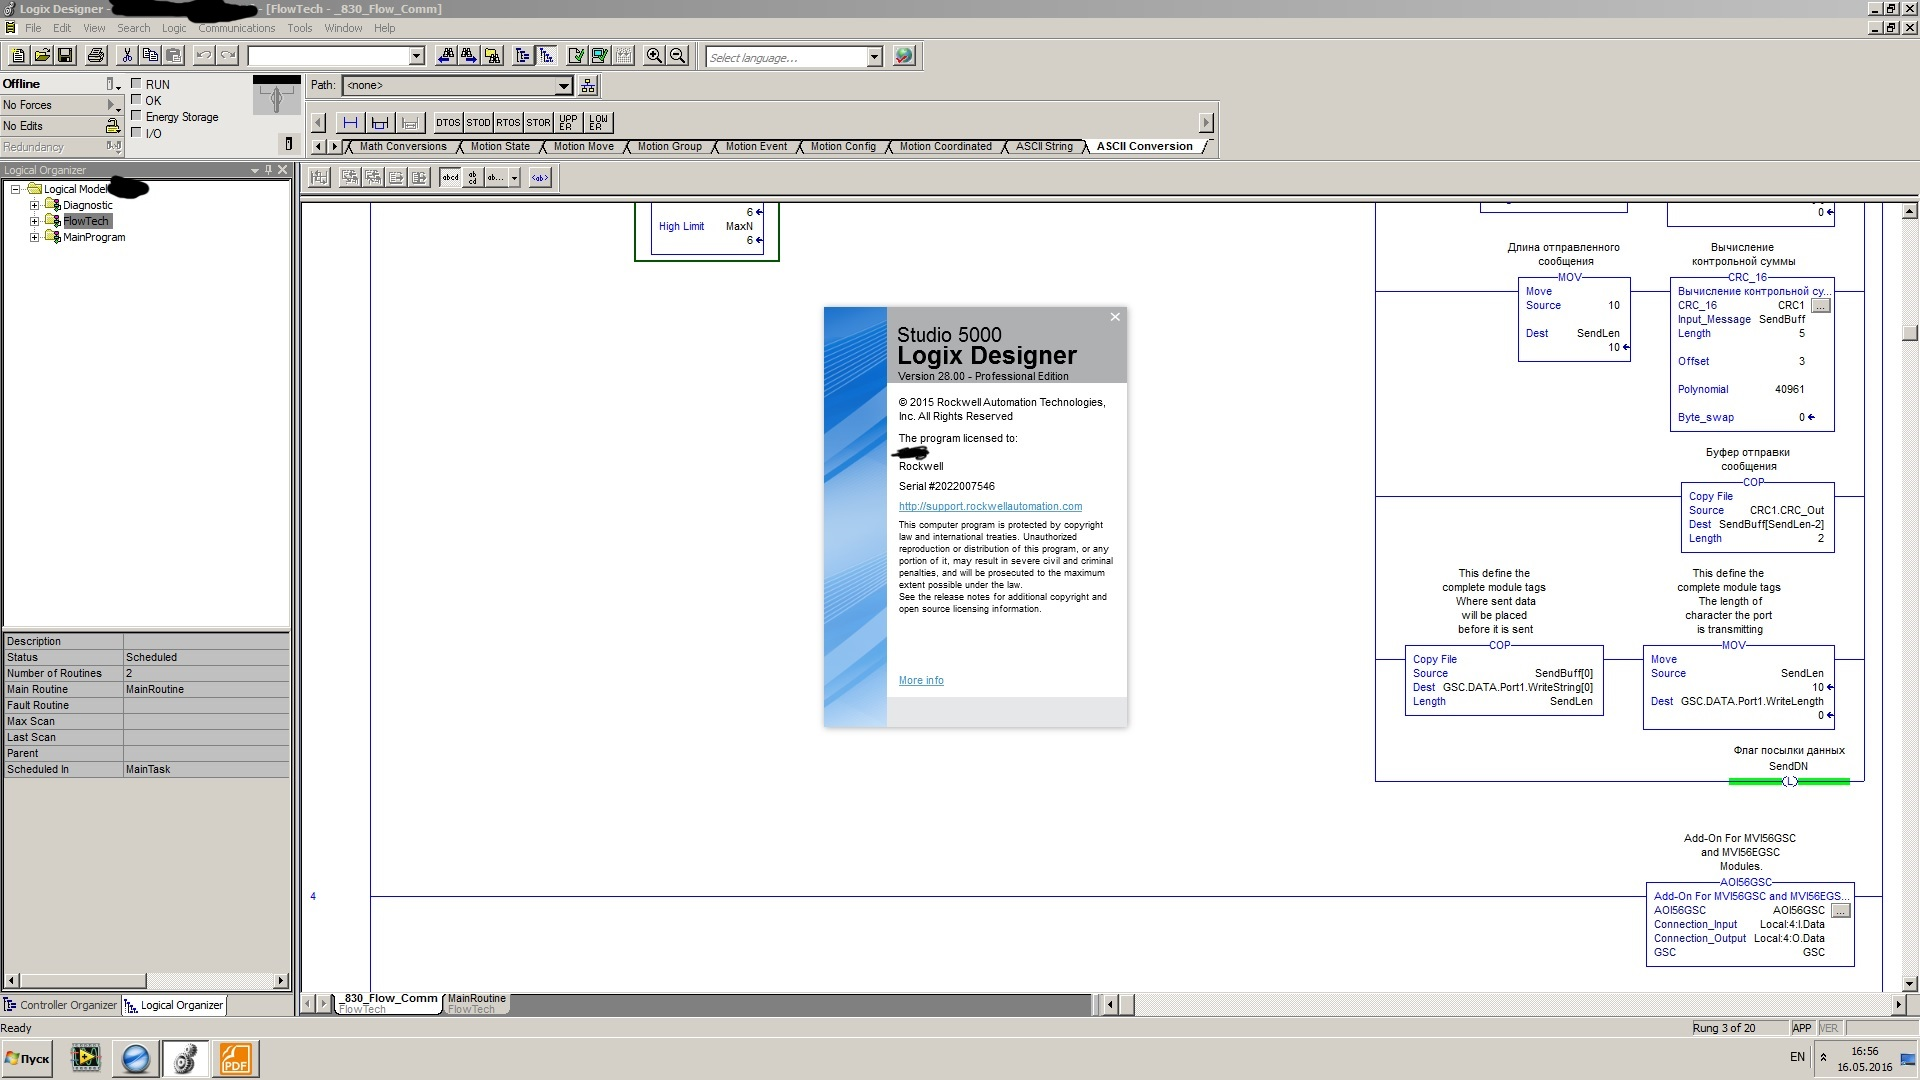 Working with Rockwell Software Studio 5000 v28.0 full license